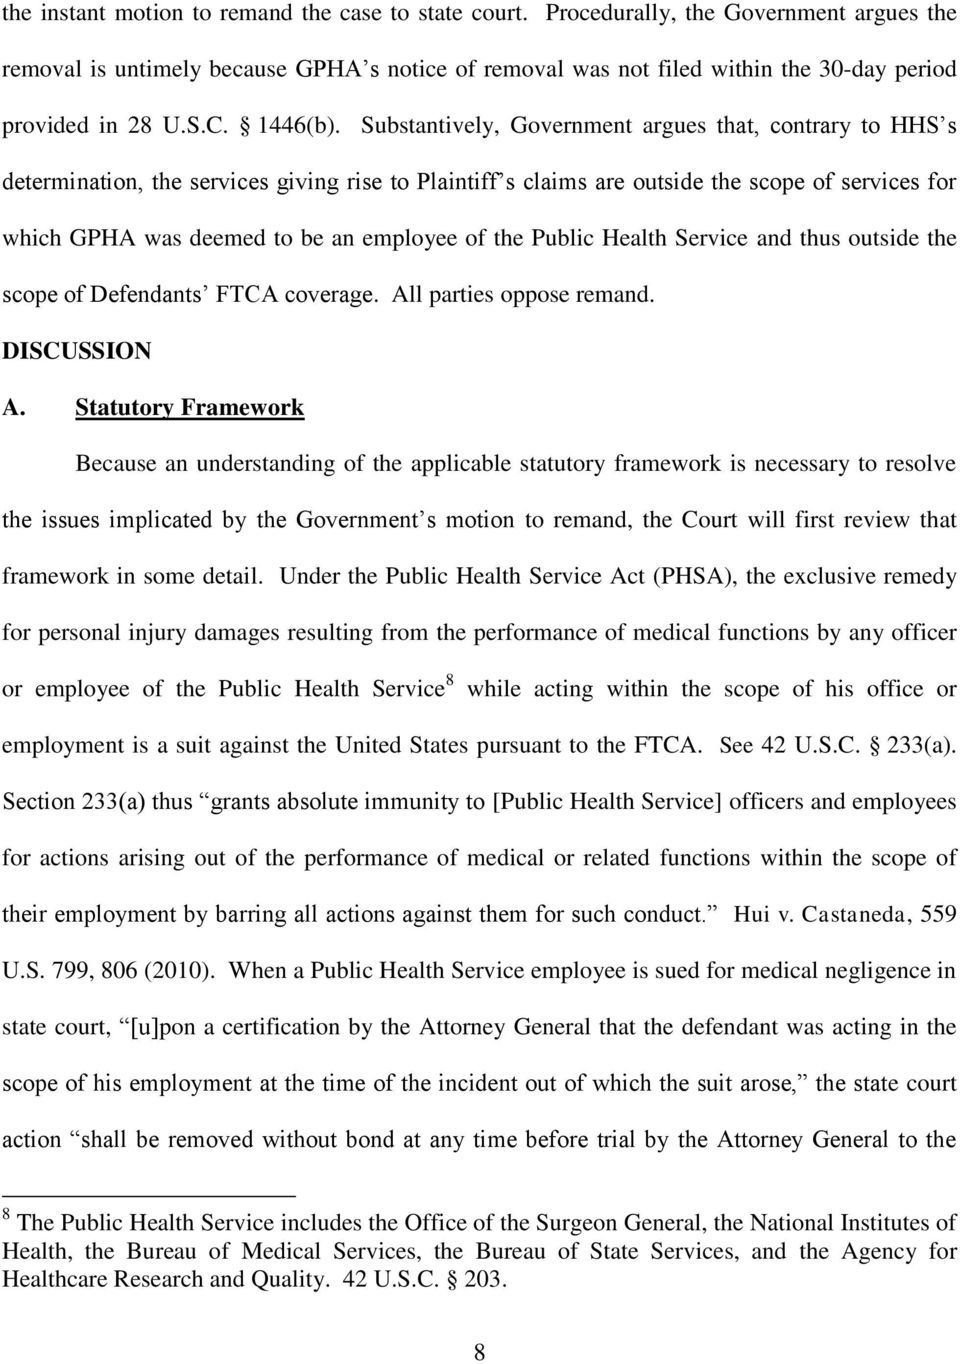 Substantively, Government argues that, contrary to HHS s determination, the services giving rise to Plaintiff s claims are outside the scope of services for which GPHA was deemed to be an employee of